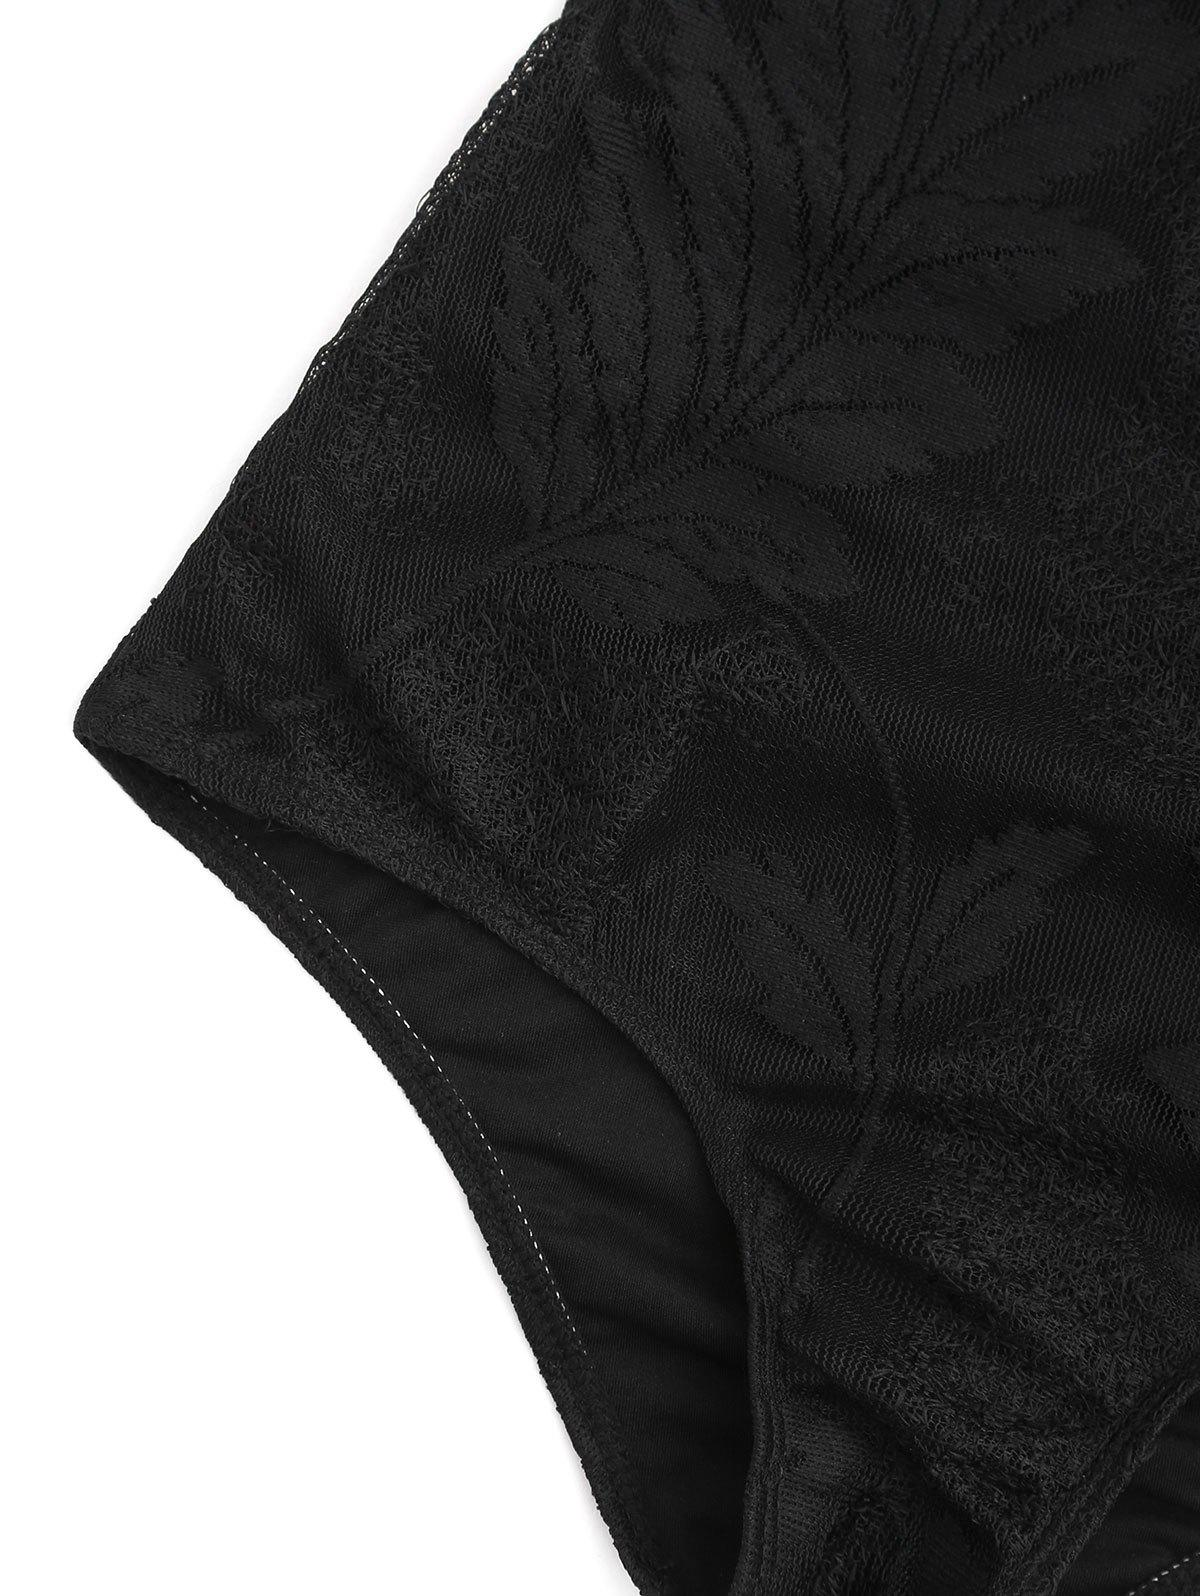 One Piece Lace Crossback Swimsuit - BLACK S